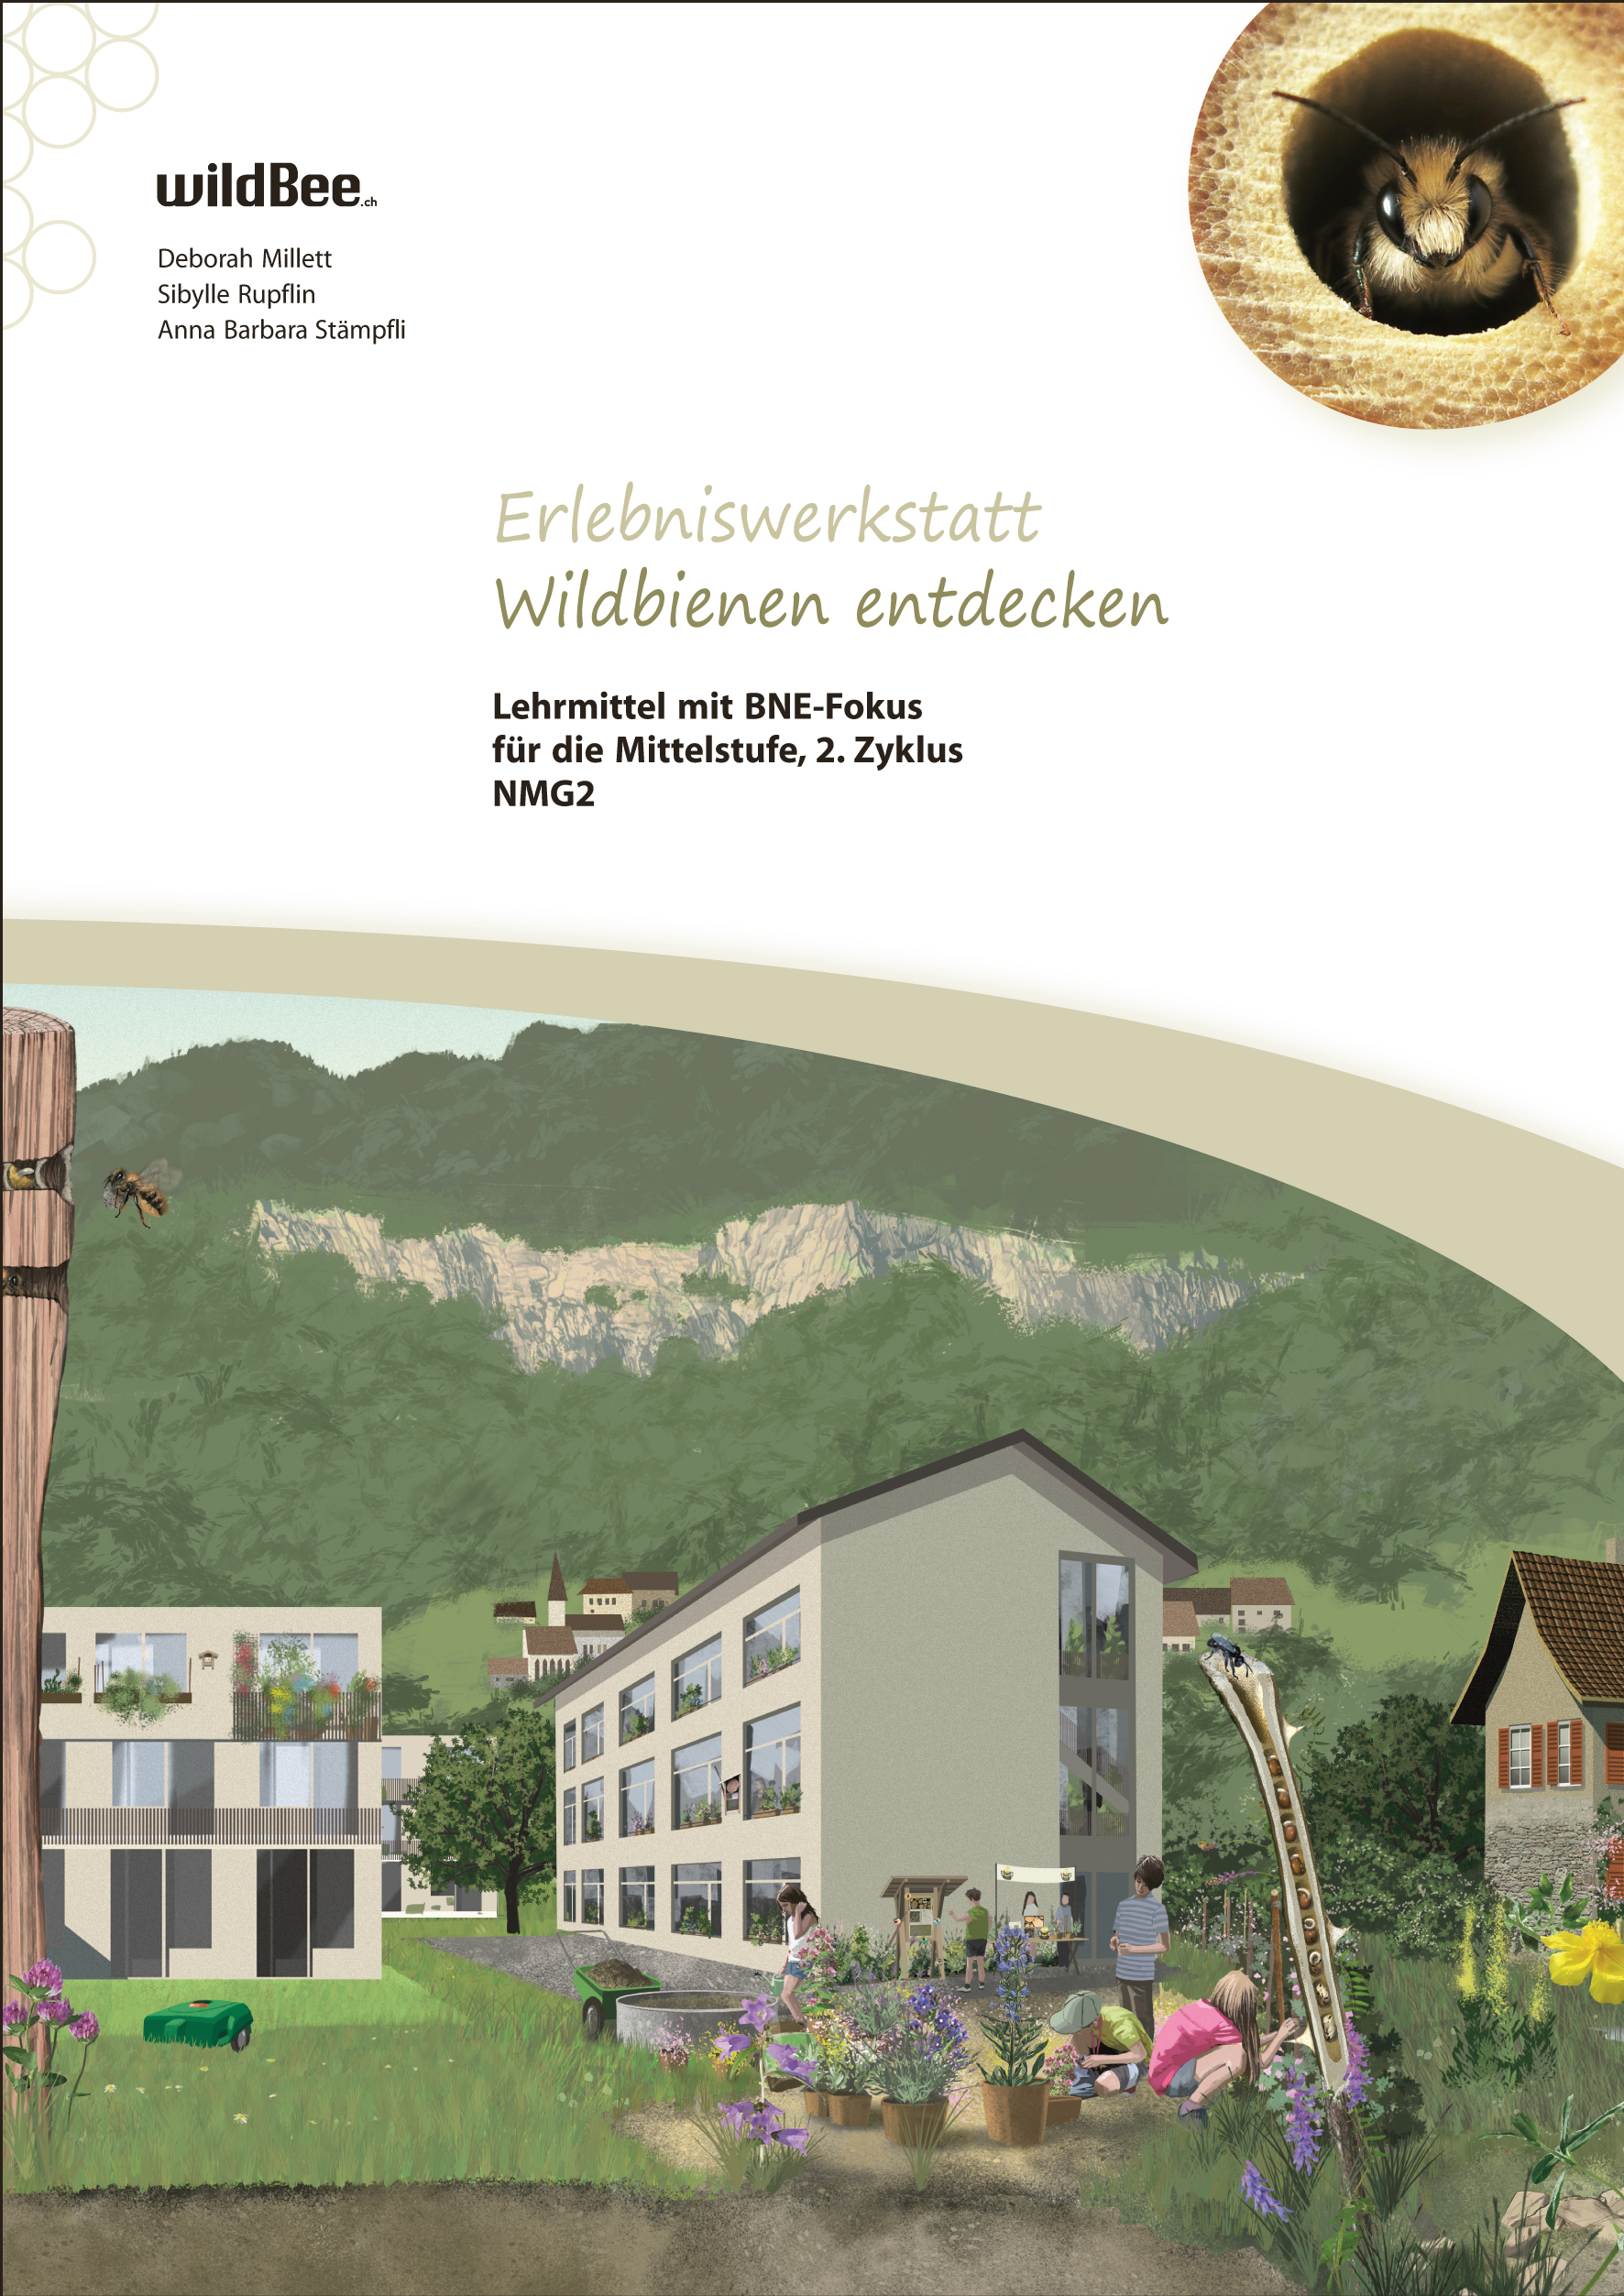 Preview image for LOM object Erlebniswerkstatt «Wildbienen entdecken»